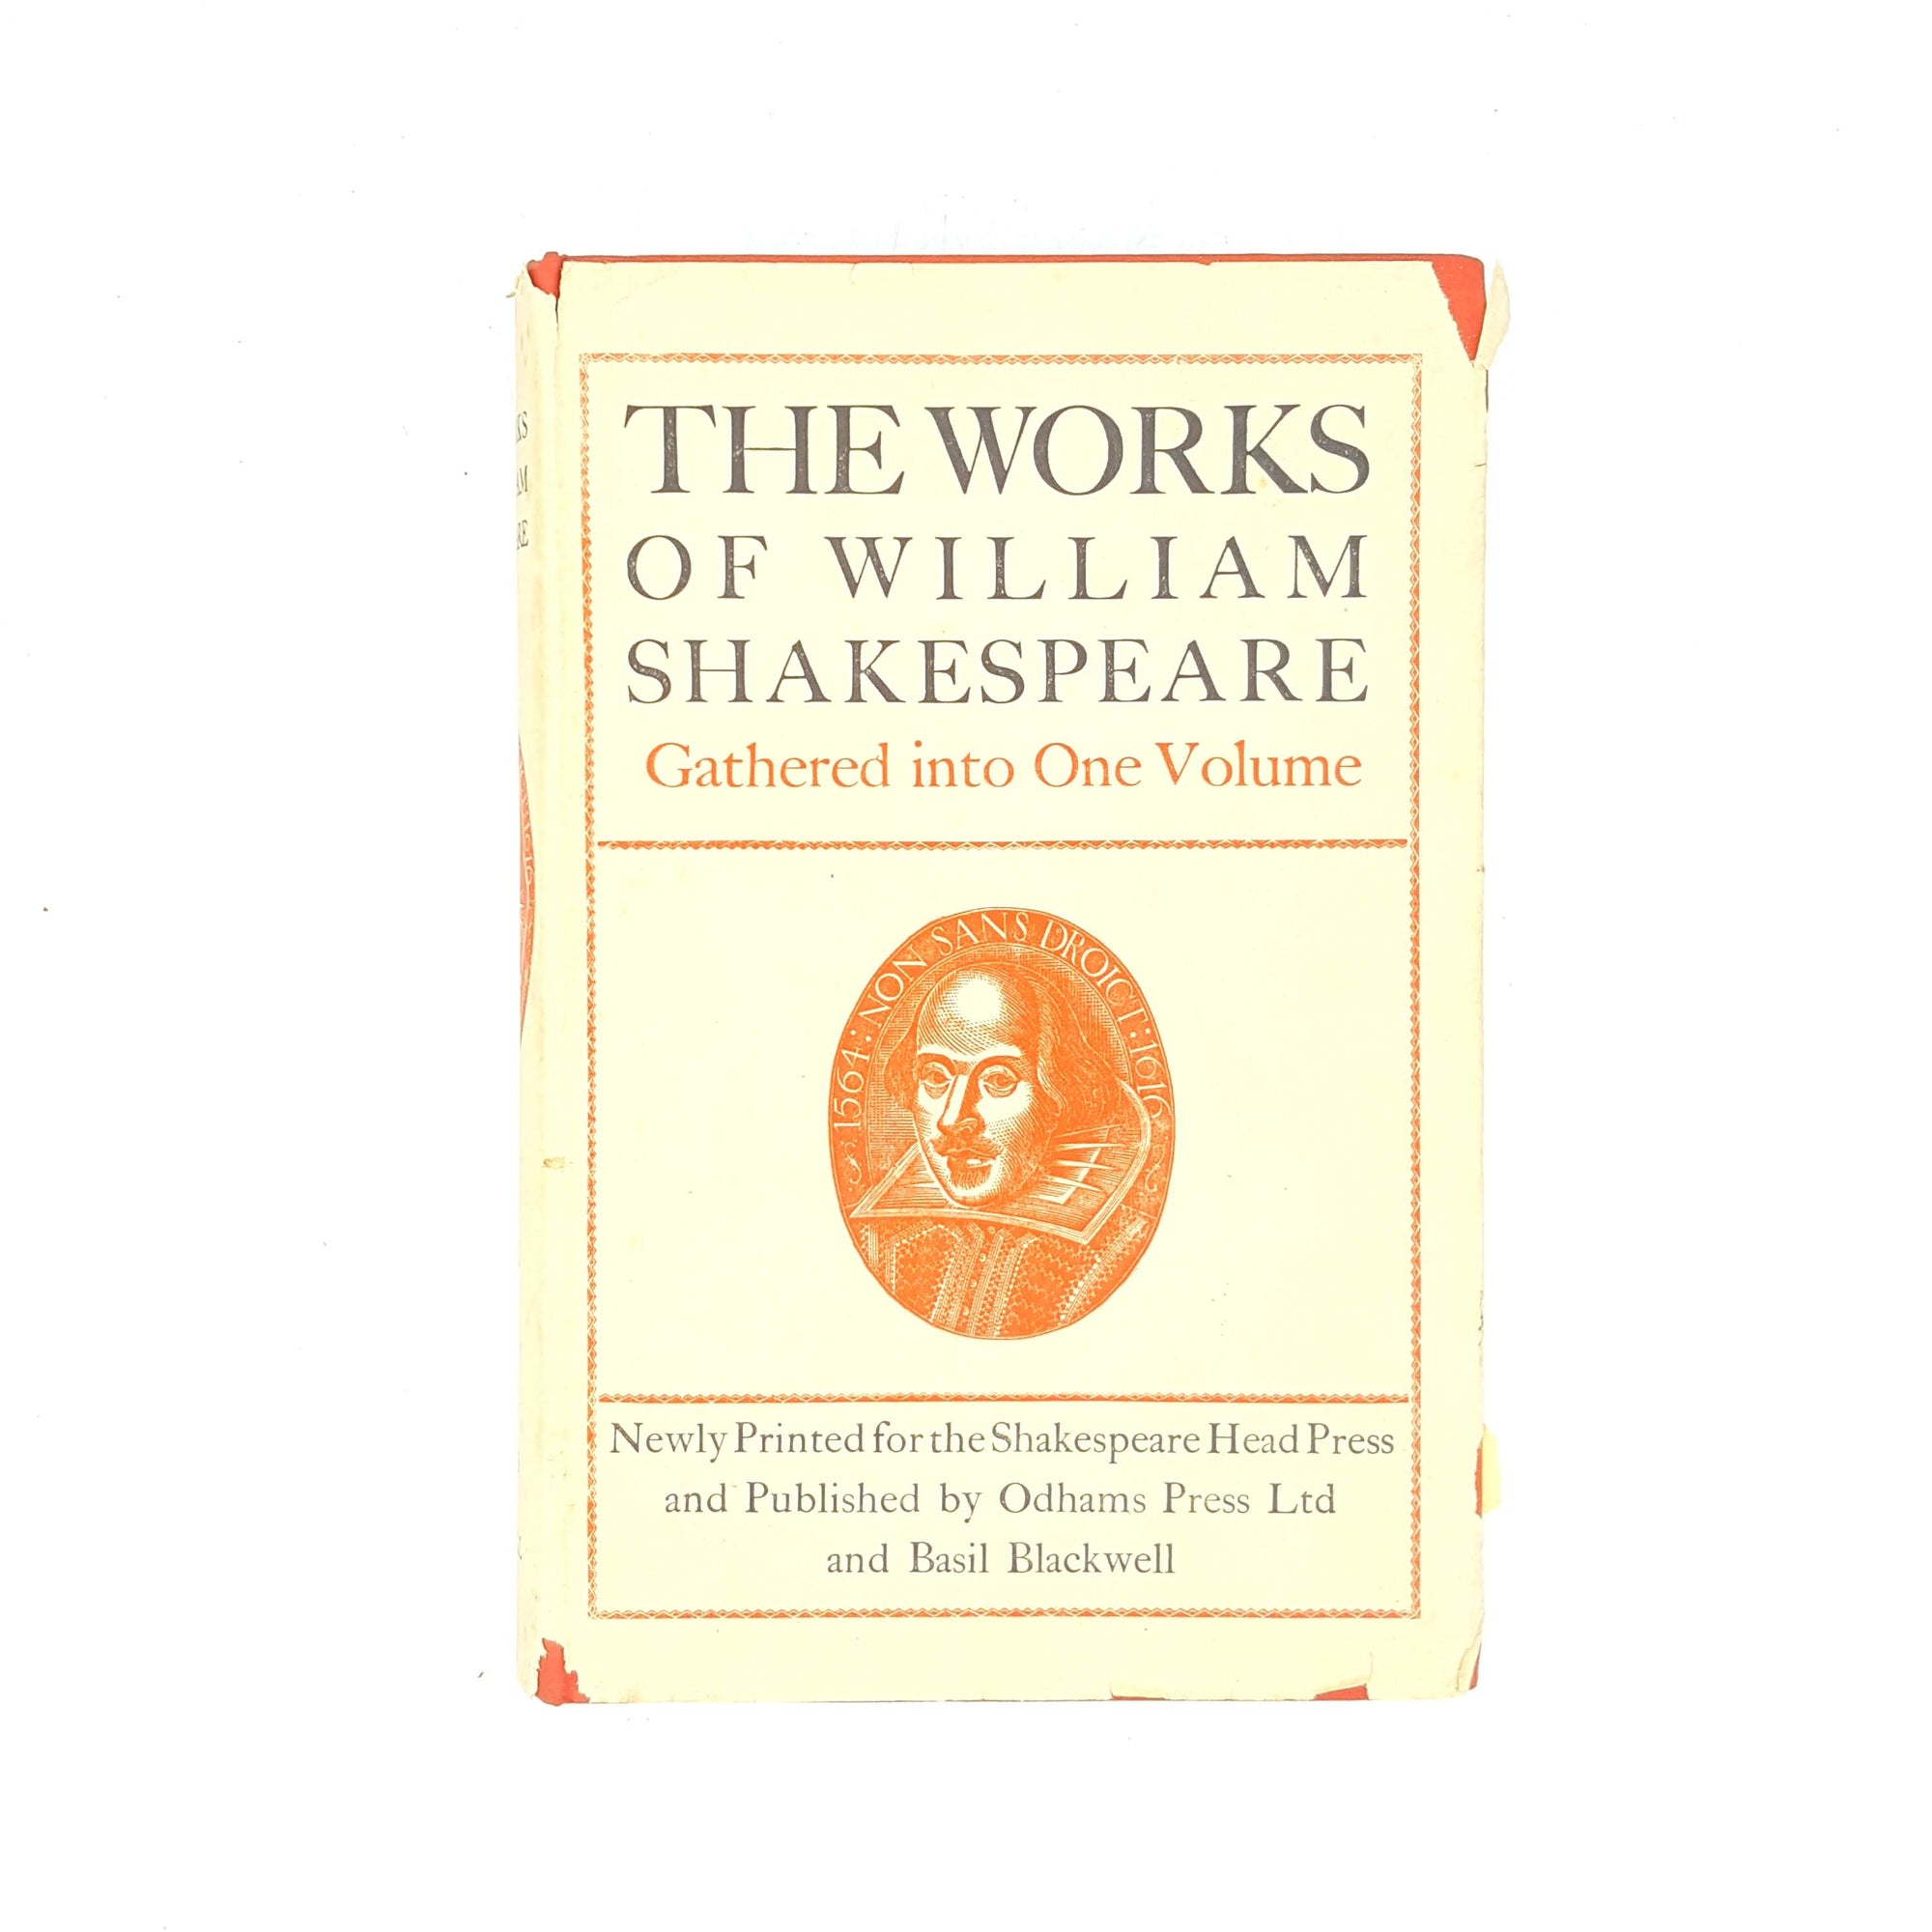 The Works of William Shakespeare Odhams and Blackwell Edition 1947